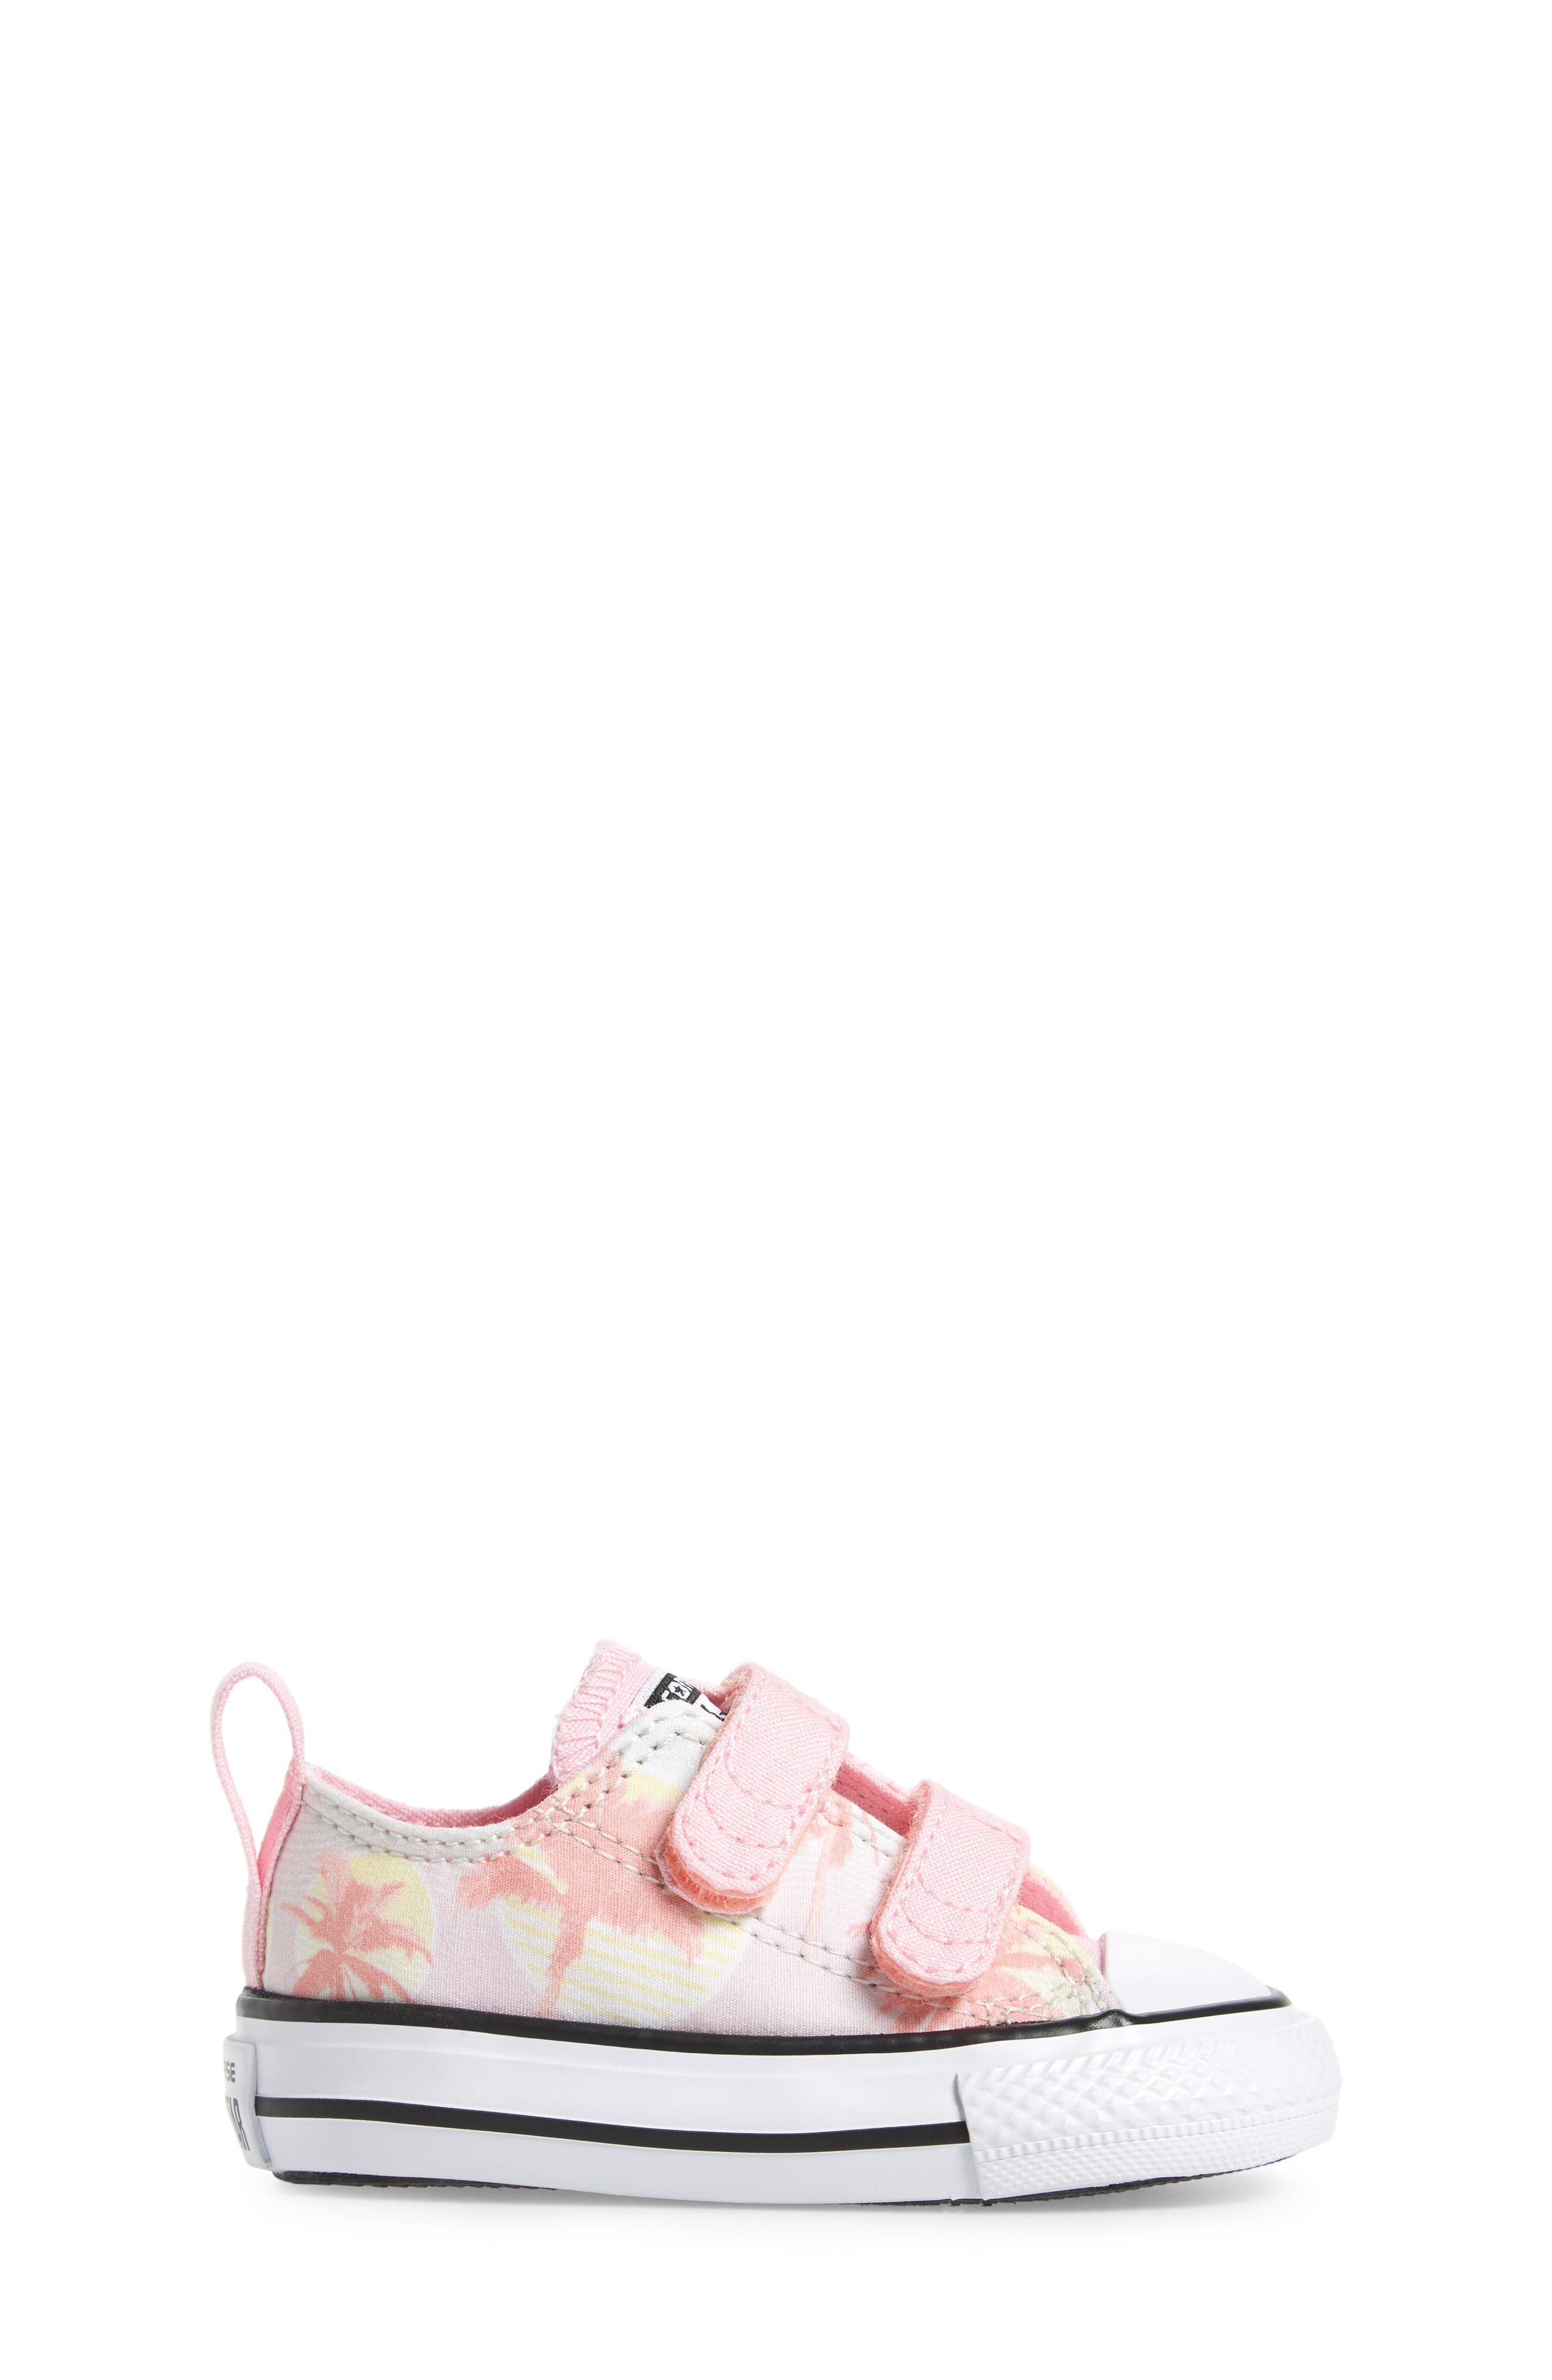 Chuck Taylor<sup>®</sup> All Star<sup>®</sup> Palm Tree Sneaker,                             Alternate thumbnail 3, color,                             Barely Green